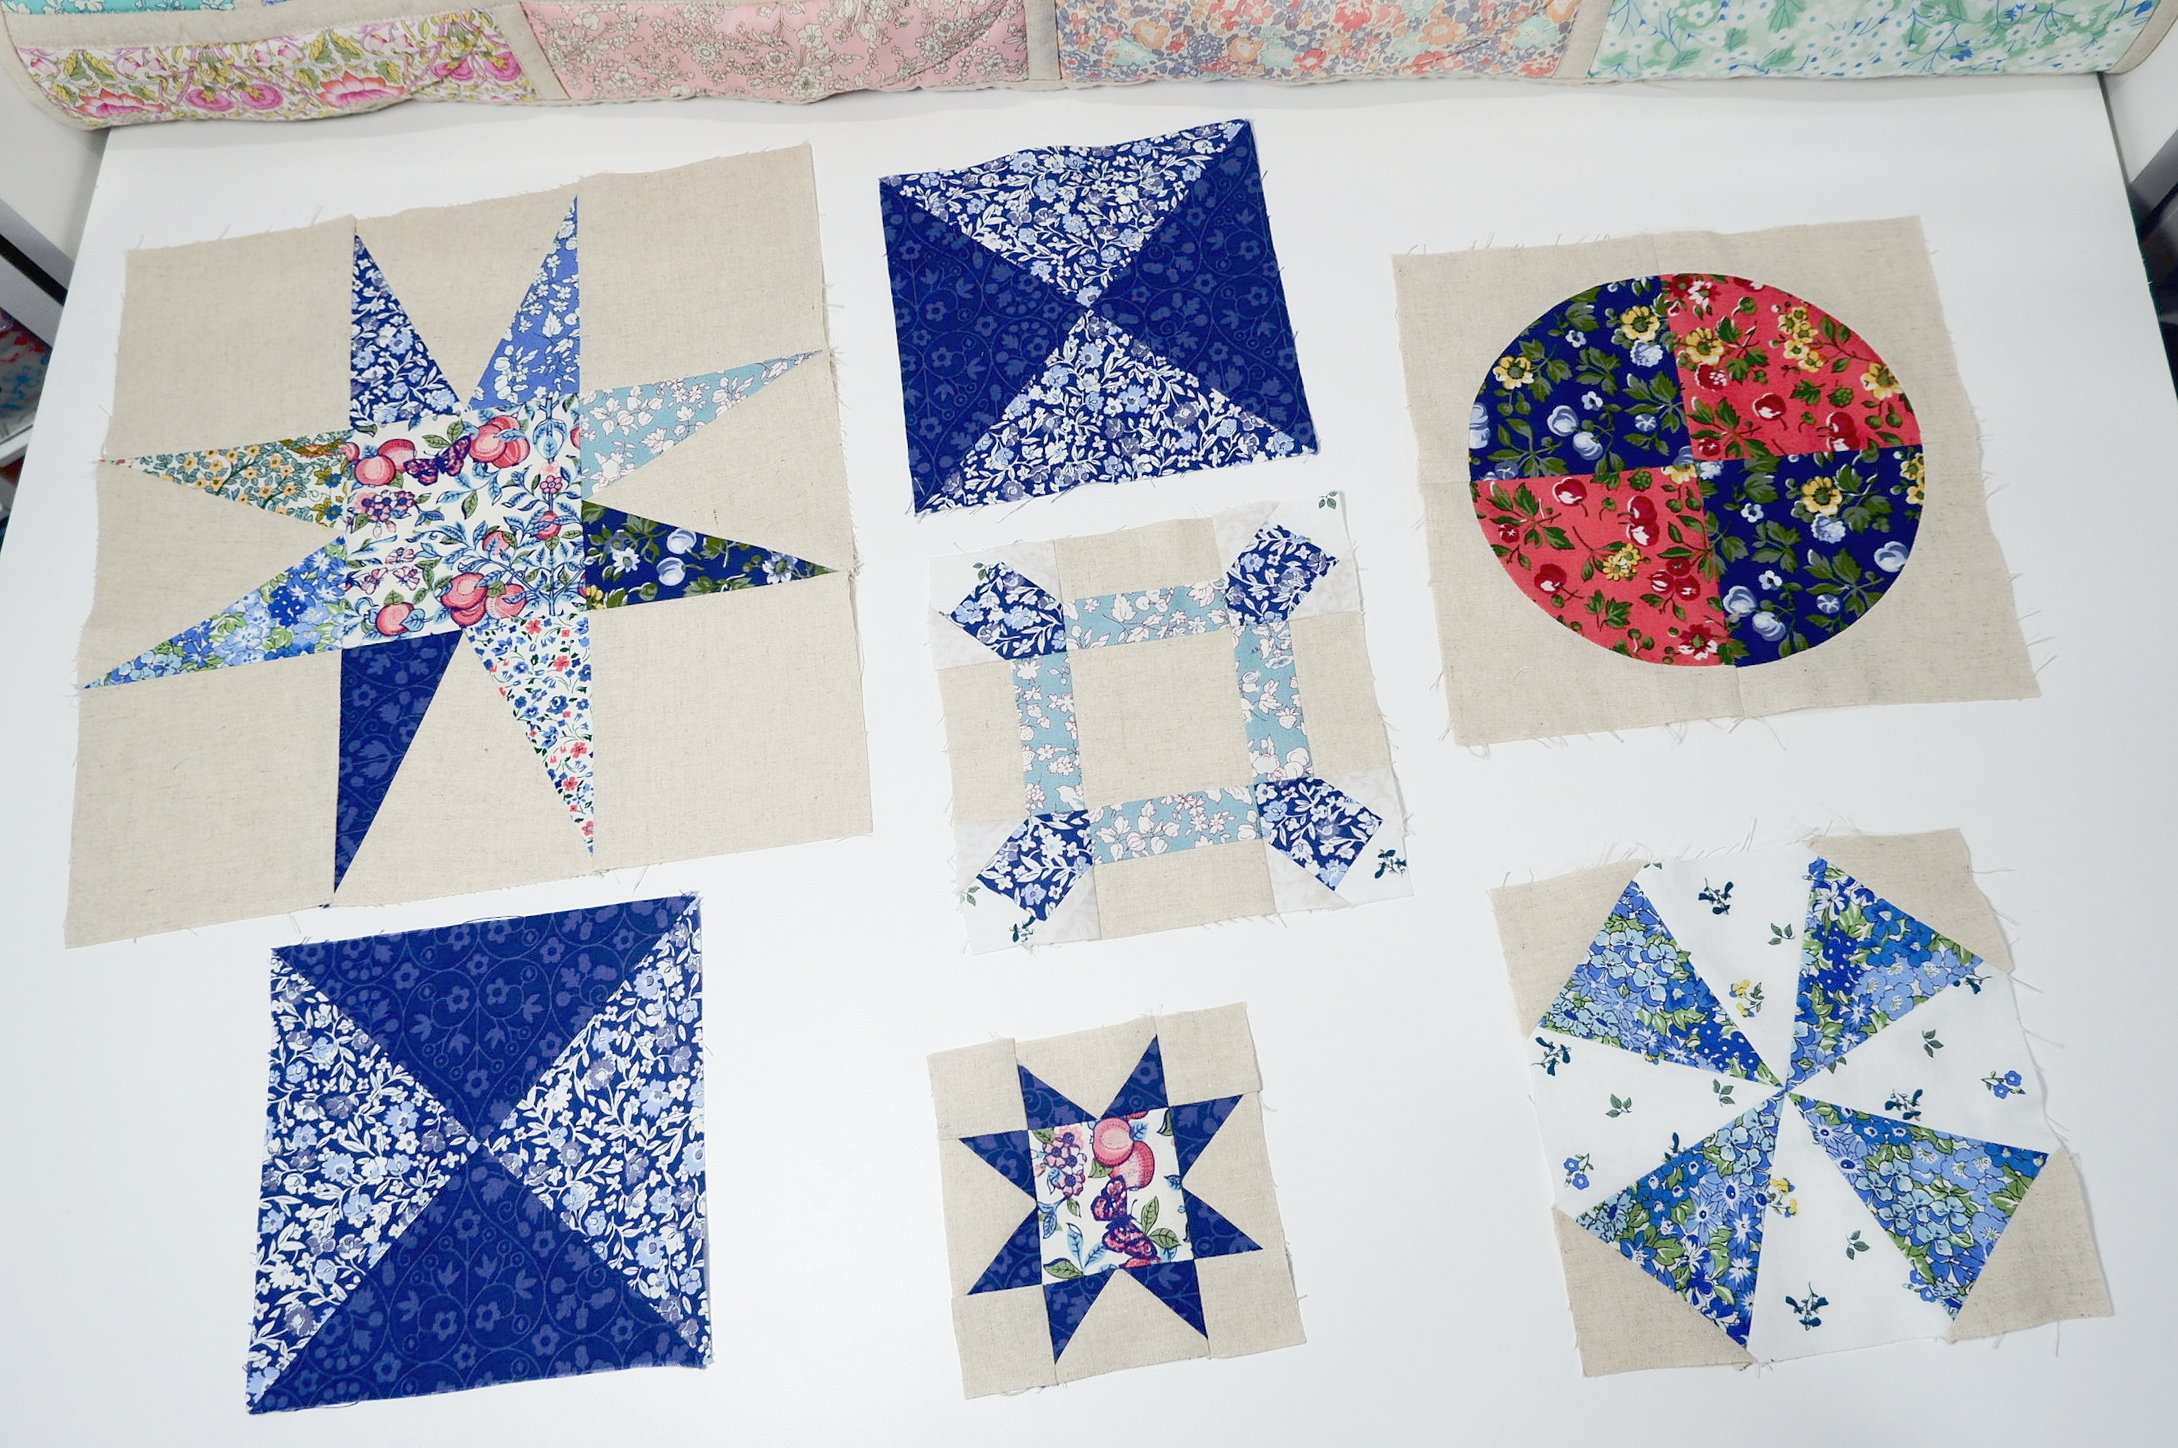 Woohoo, we've got another block to add to our Orchard Garden Sizzix Sampler quilt!  xoxo Justin + Diane